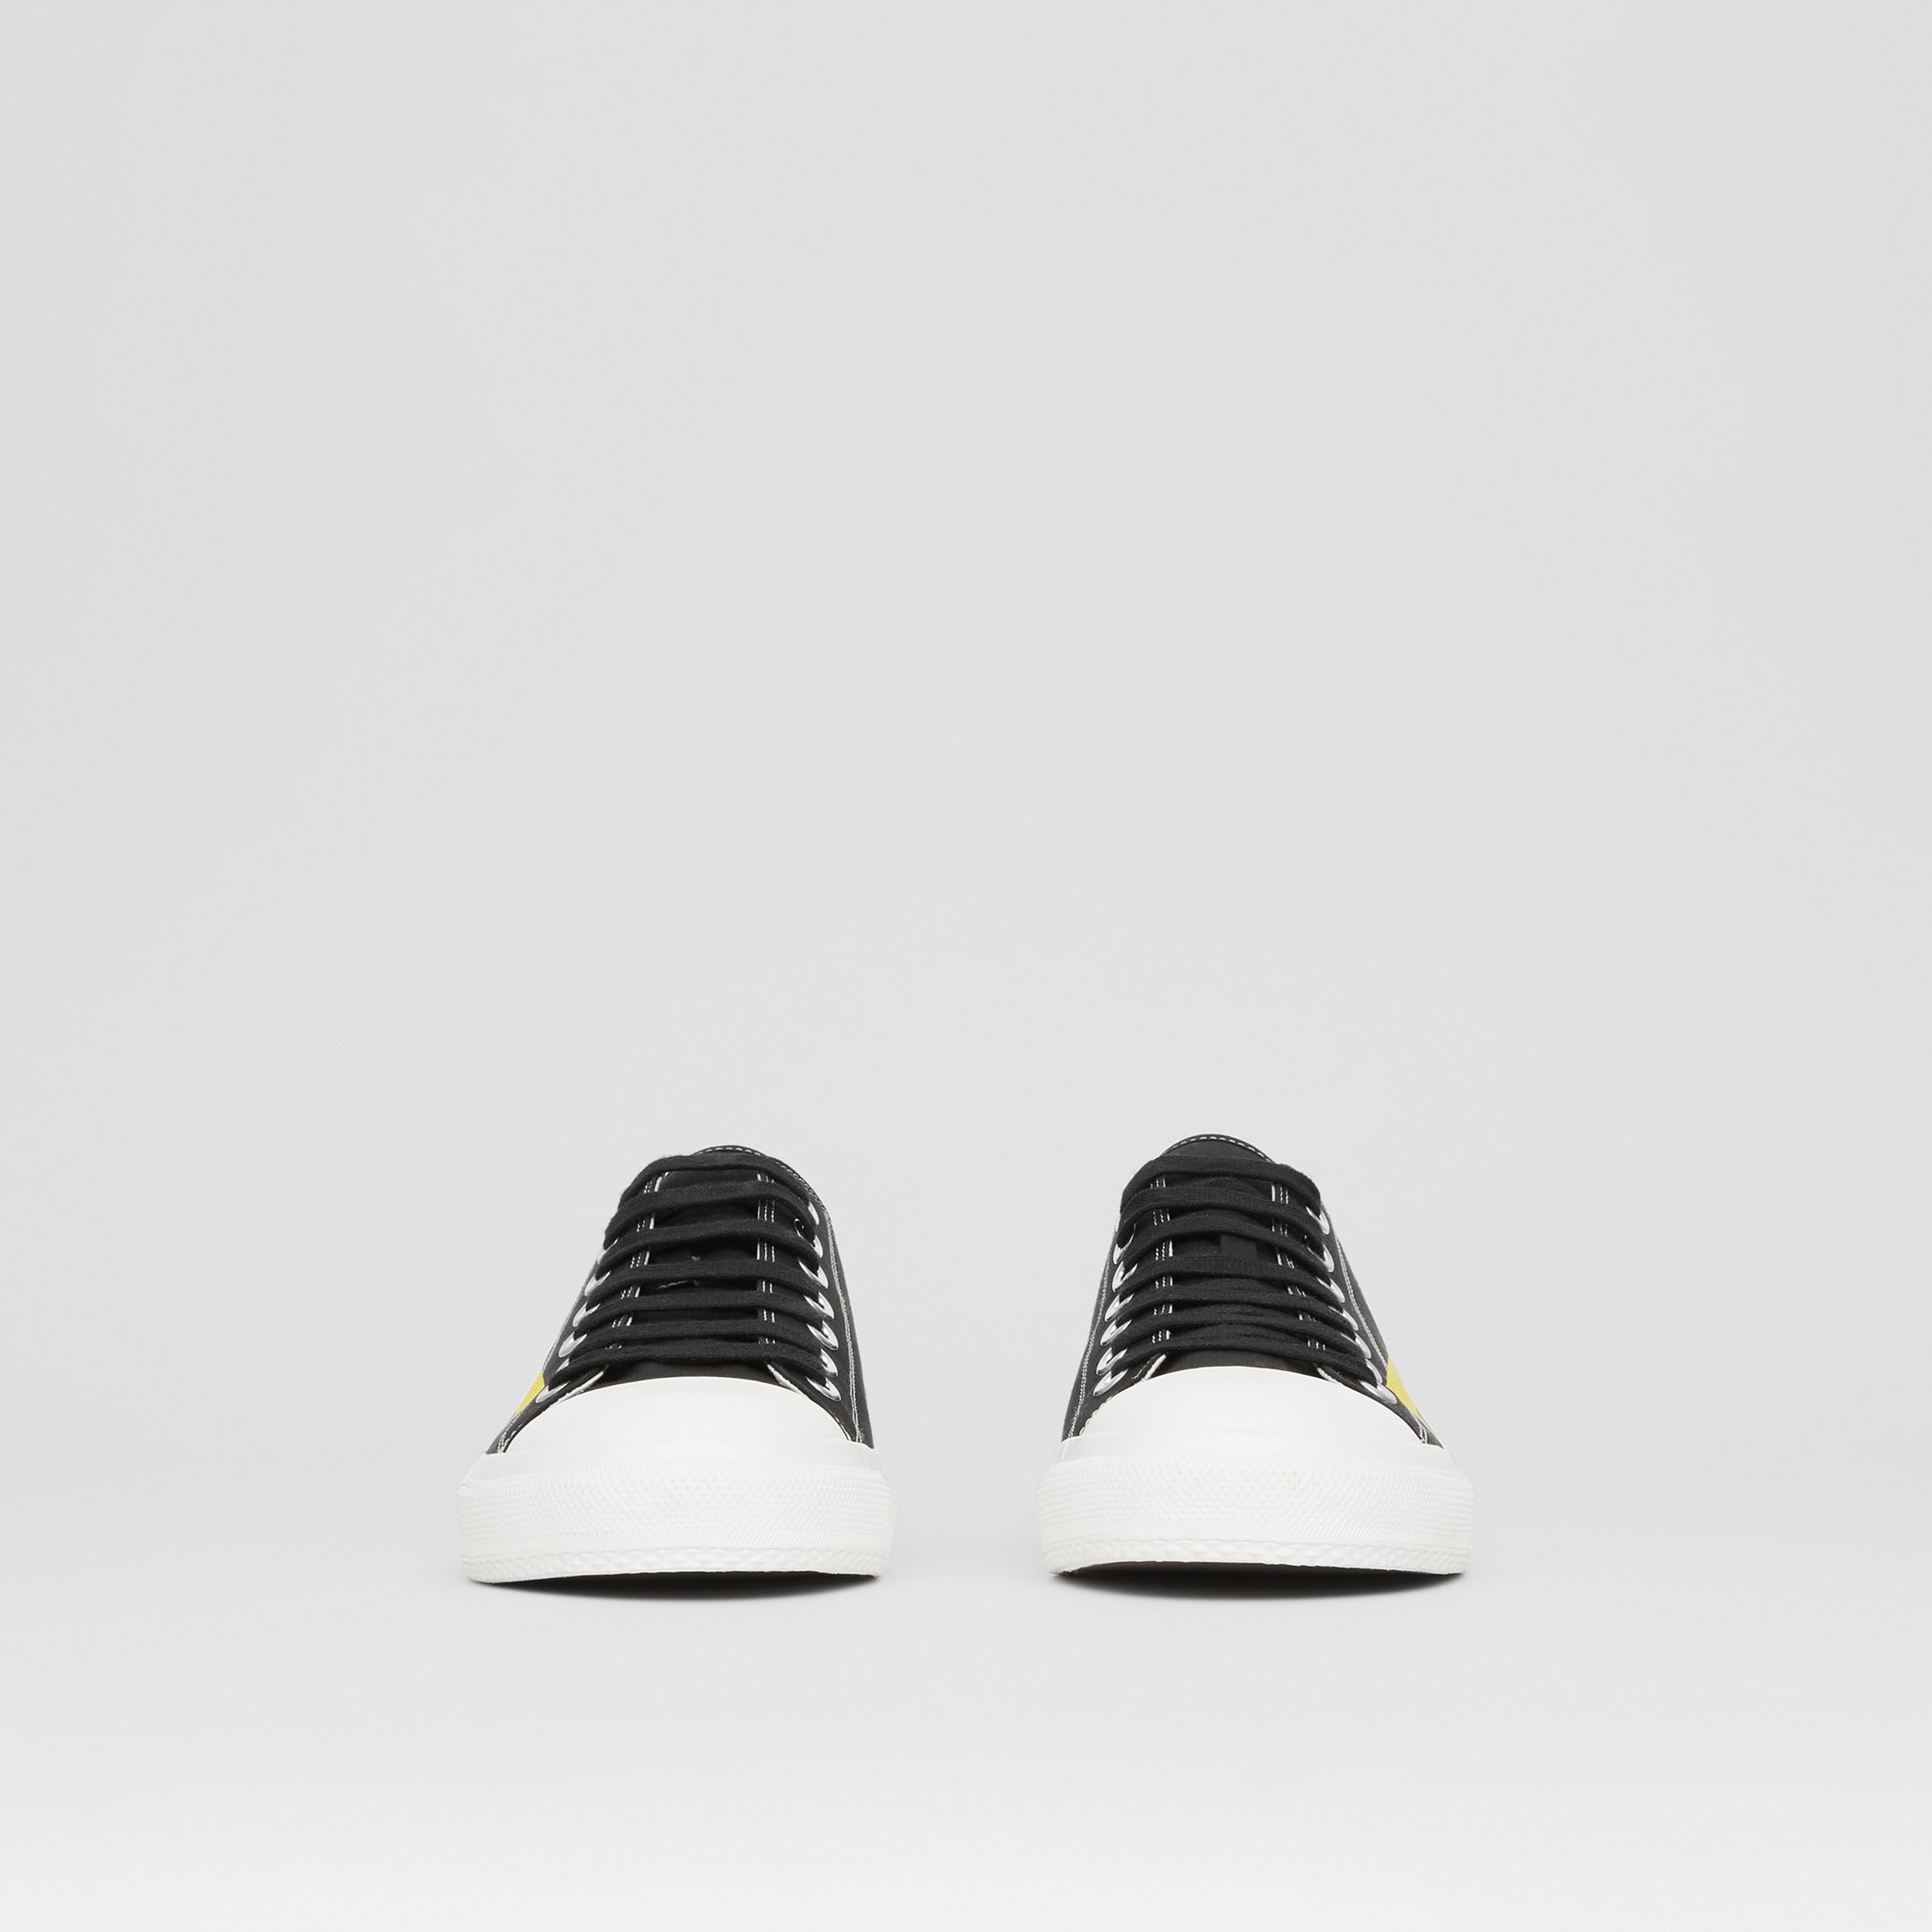 Logo Print Two-tone Cotton Gabardine Sneakers in Black - Men | Burberry - 4